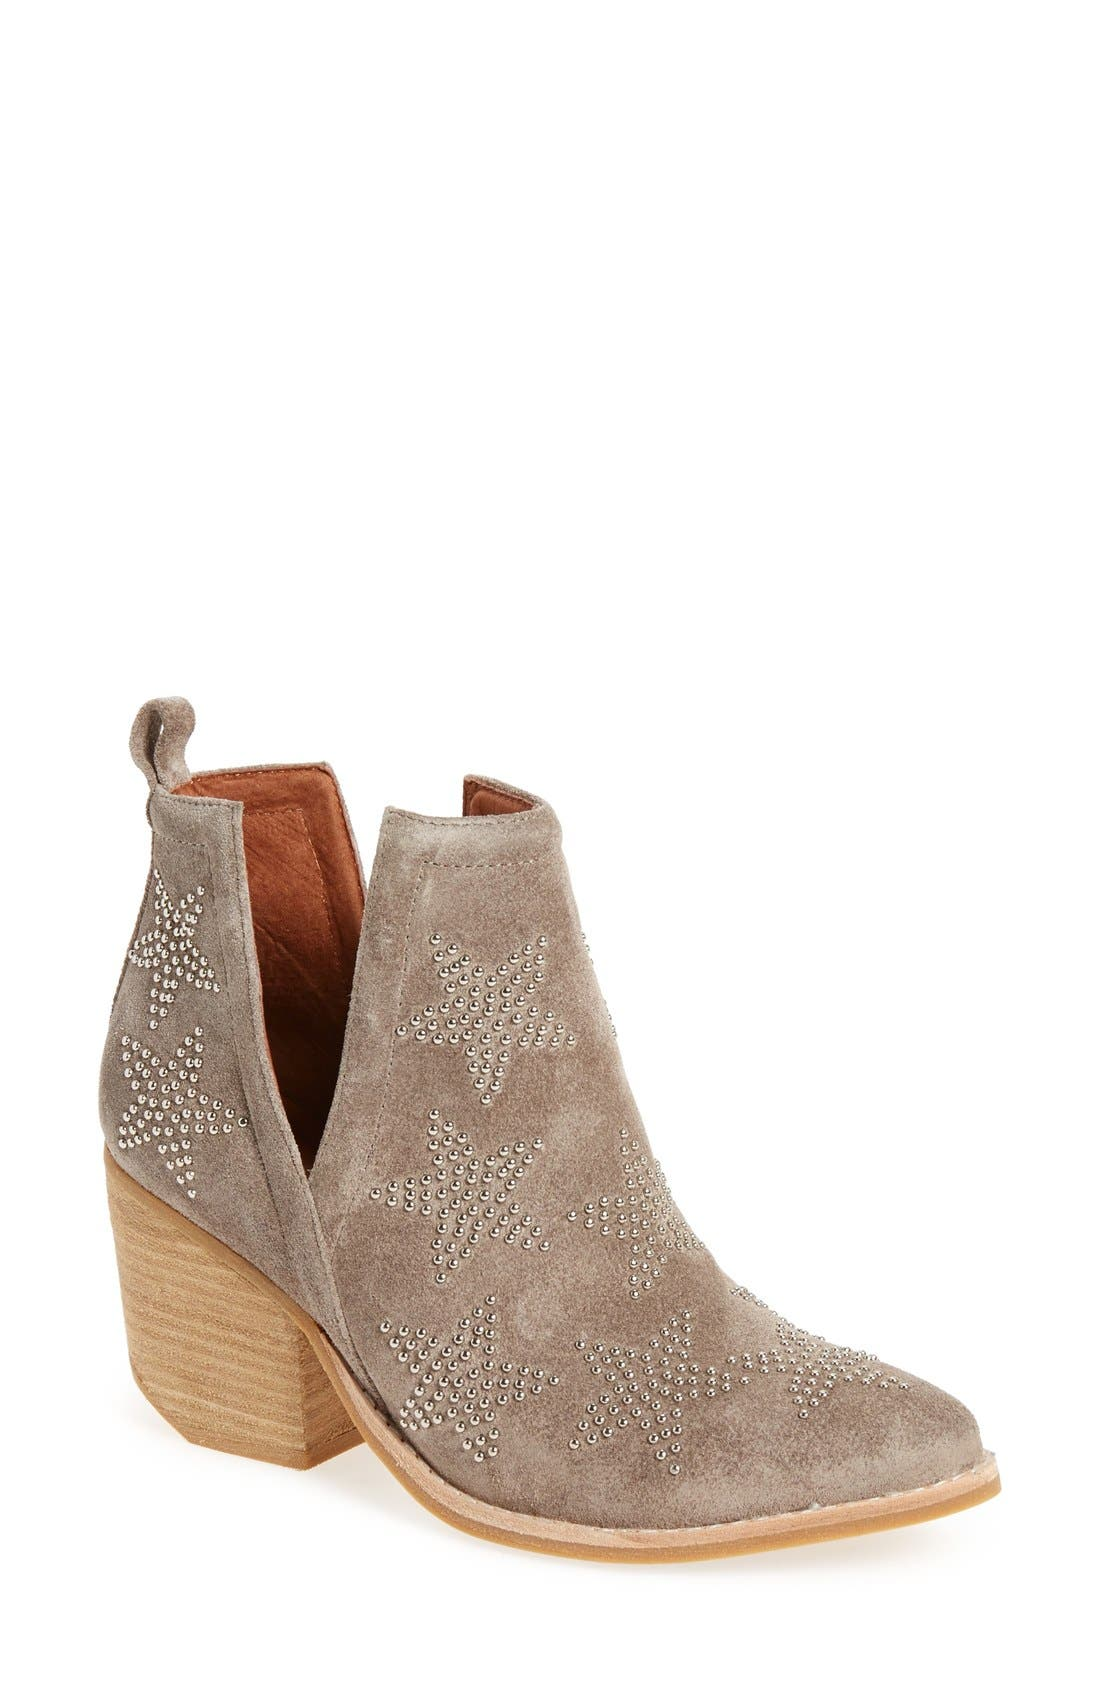 Main Image - Jeffrey Campbell 'Asterial' Star Studded Bootie (Women)